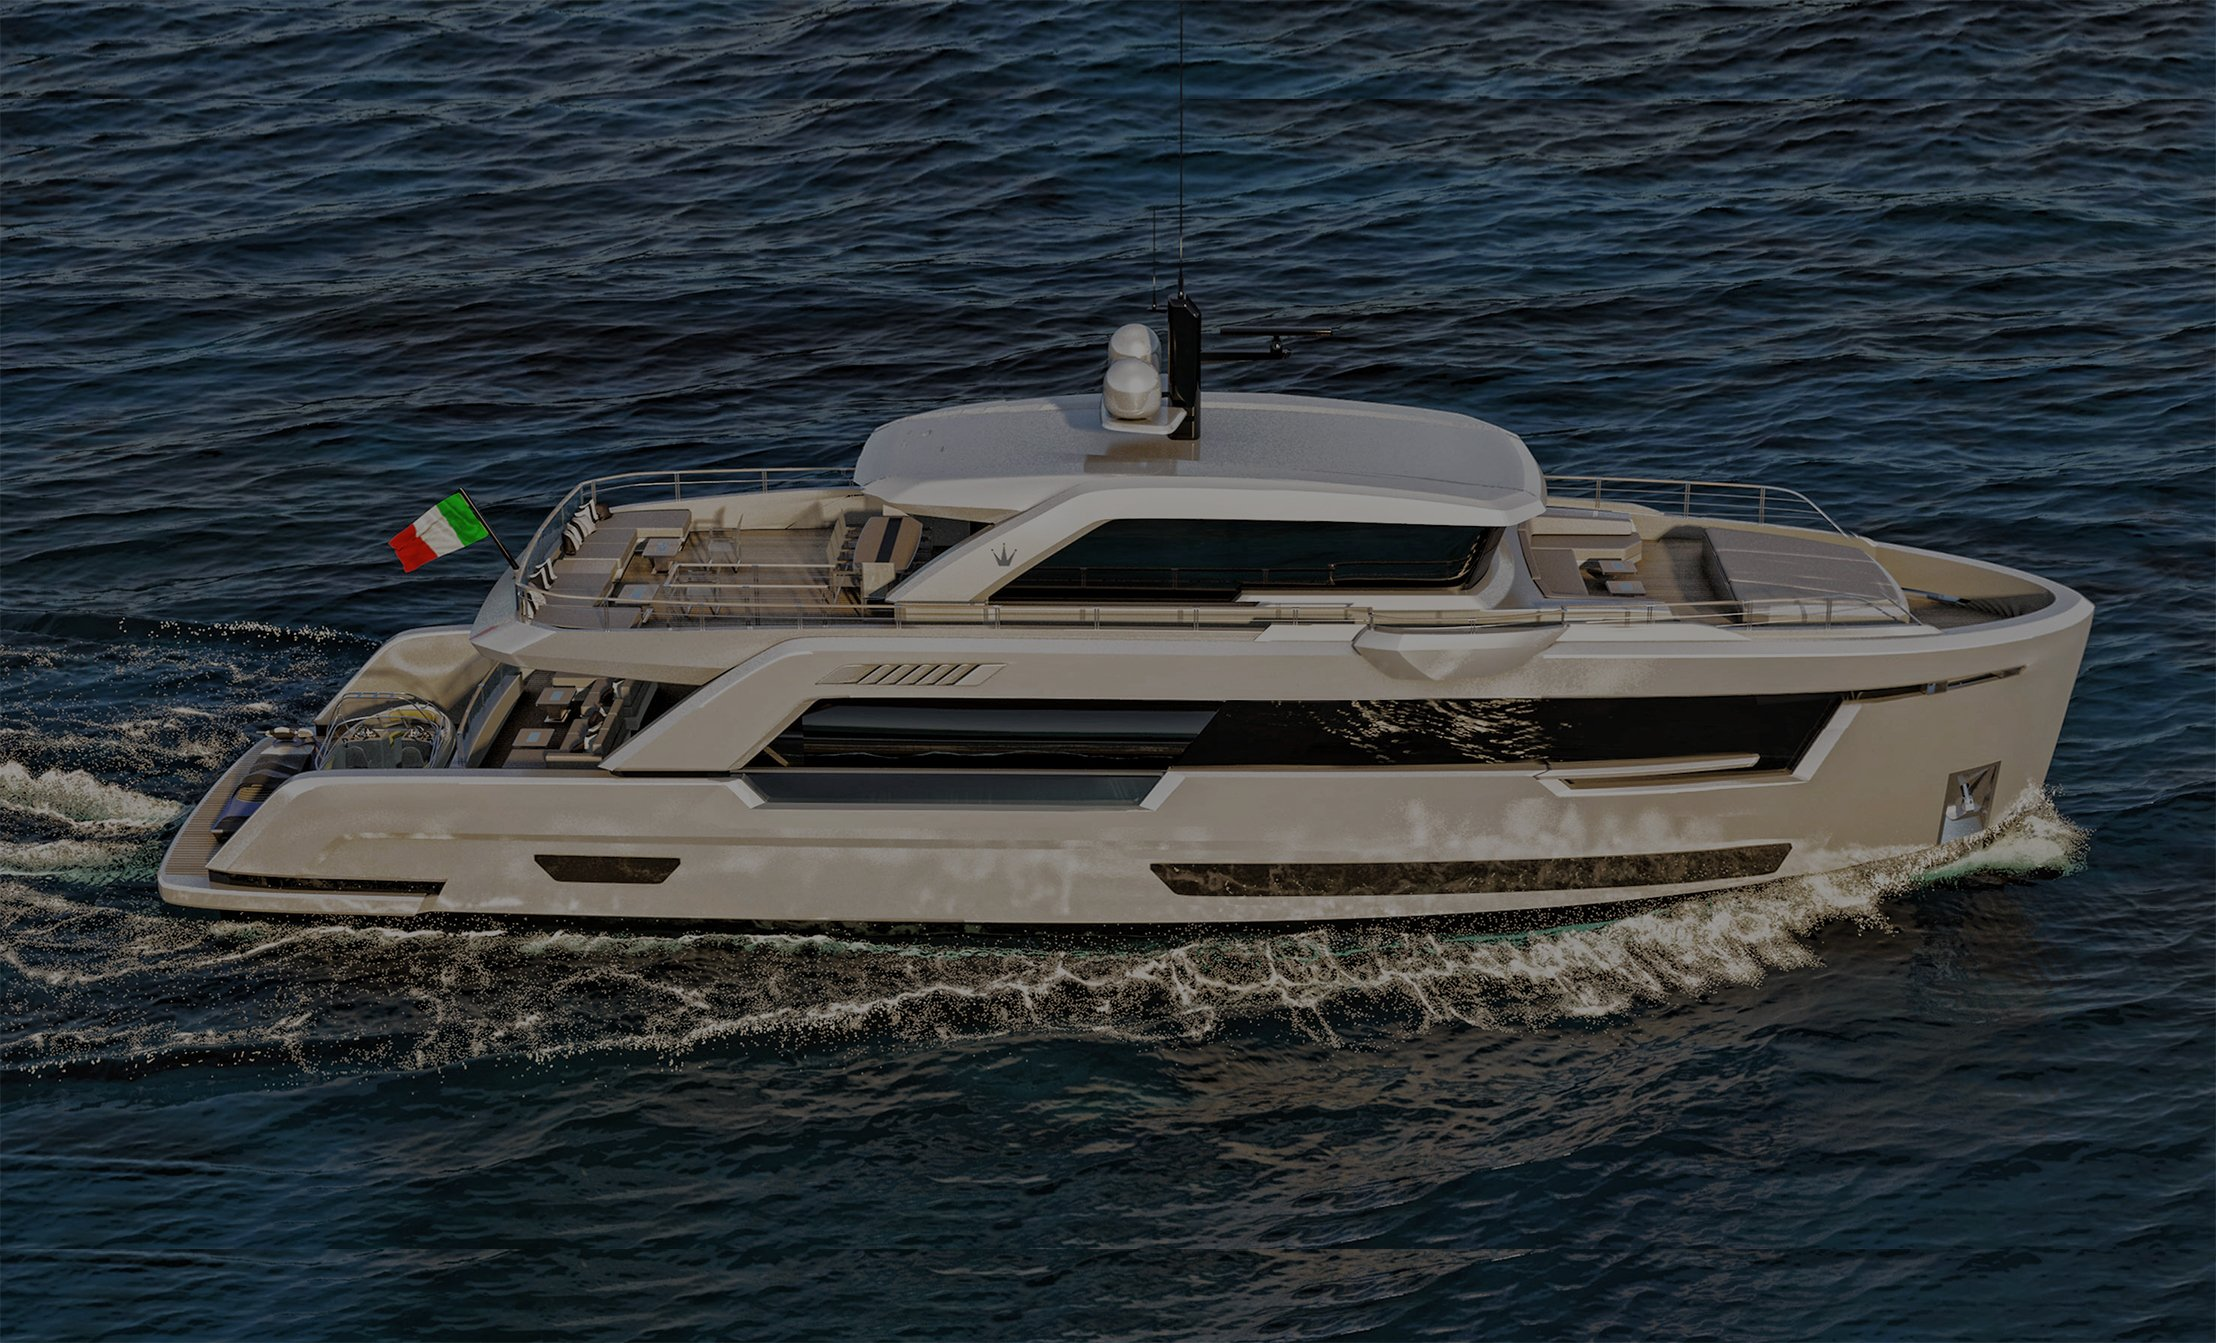 Ducale 88 Smaller sized explorer yacht First Image